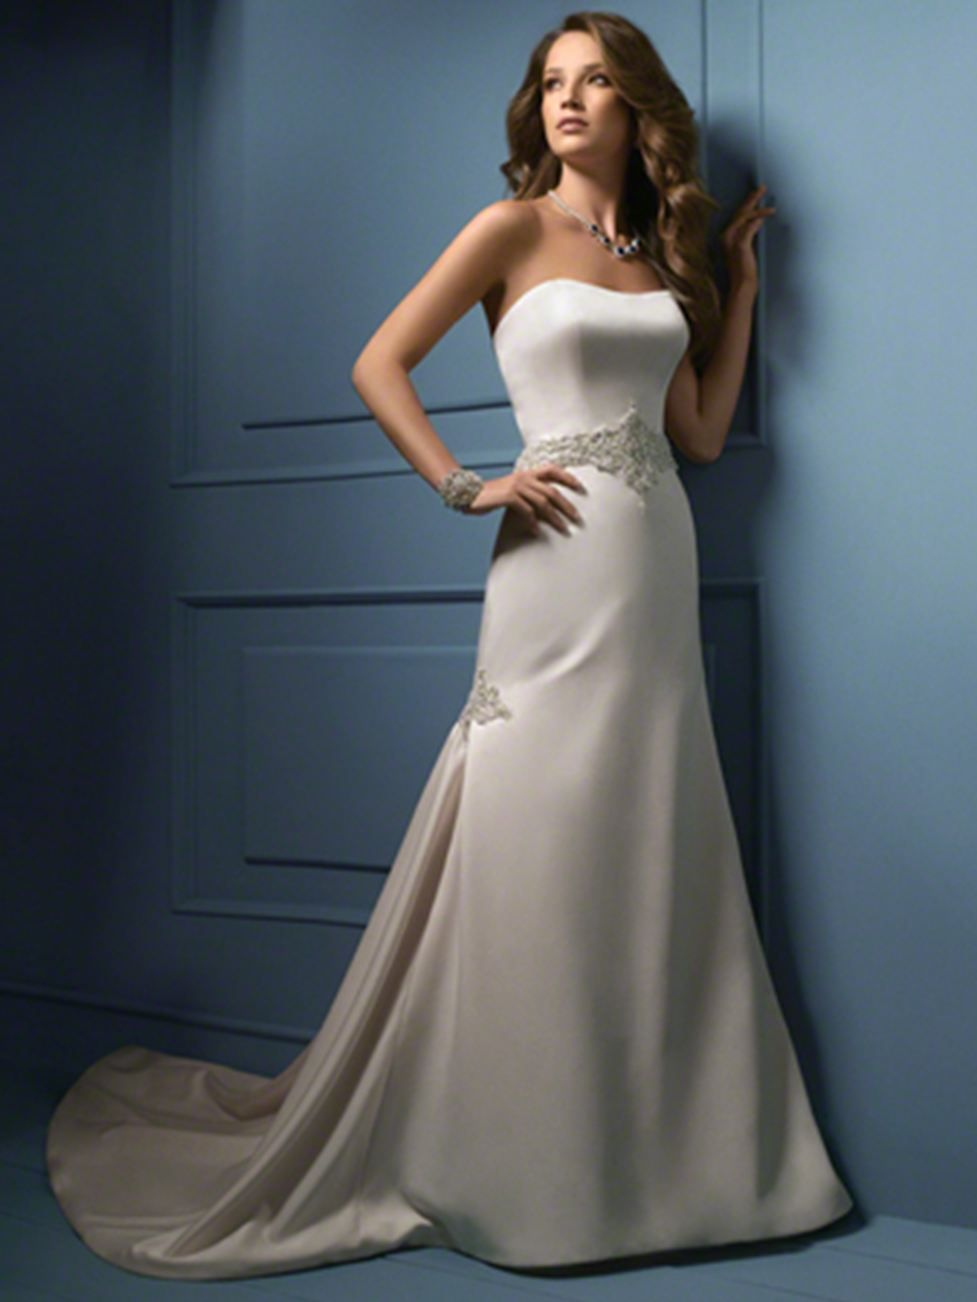 Alfred angelo bridal gown style 809 wedding 3 pinterest oliviabridal design alfred angelo 809 price alfred angelo wedding dresses cheap for sale ombrellifo Choice Image